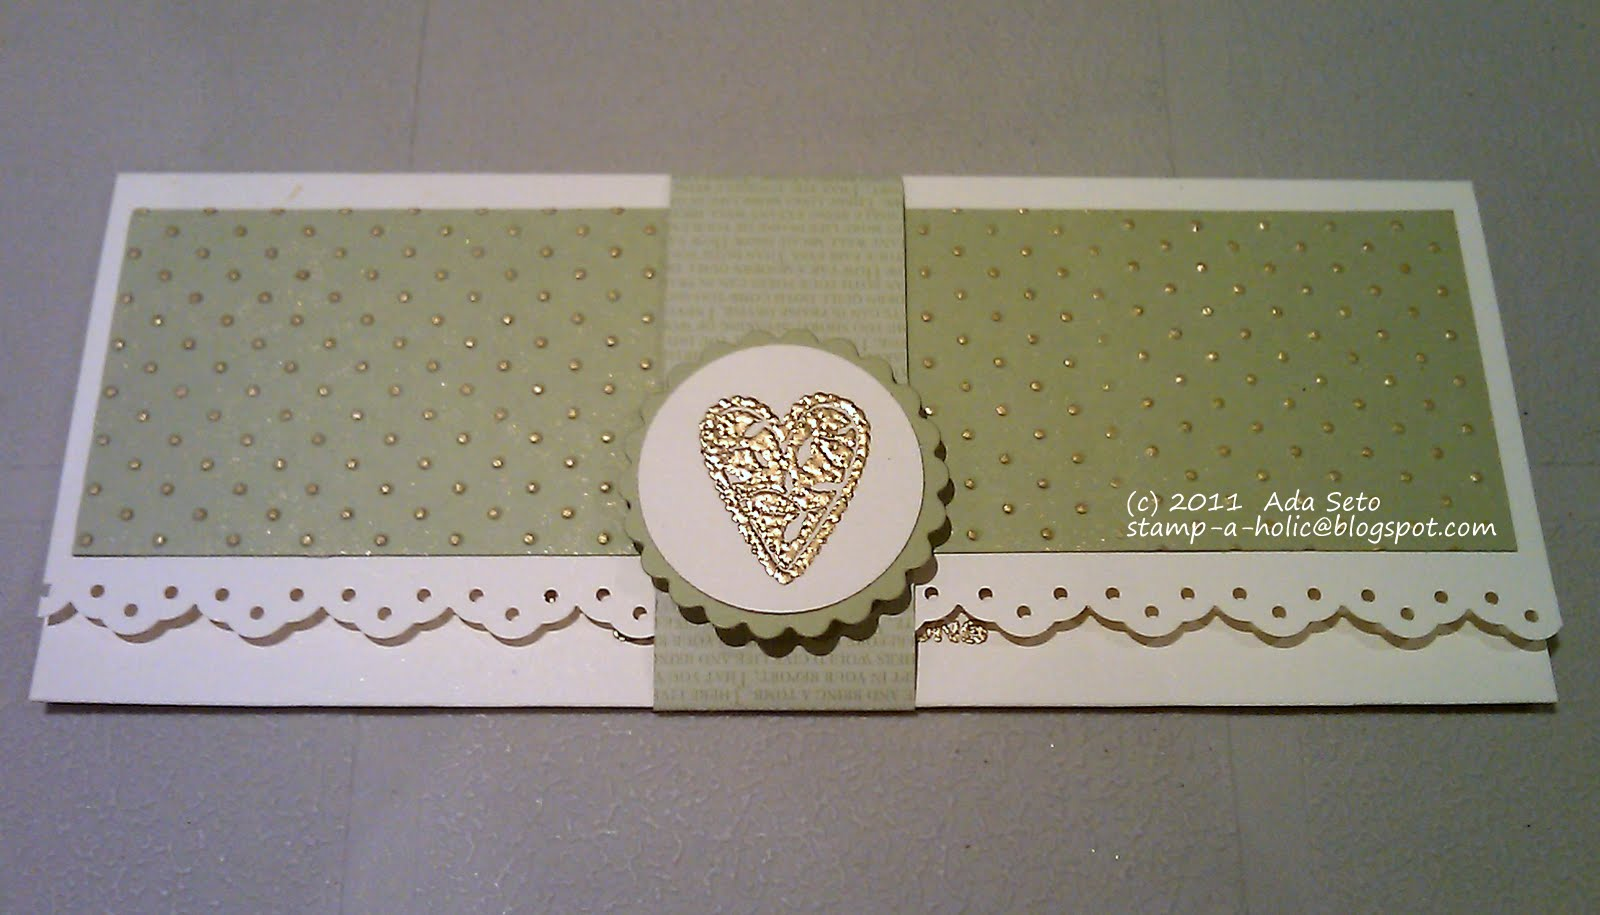 Confessions of a Stamp-a-holic: Money Holder Card